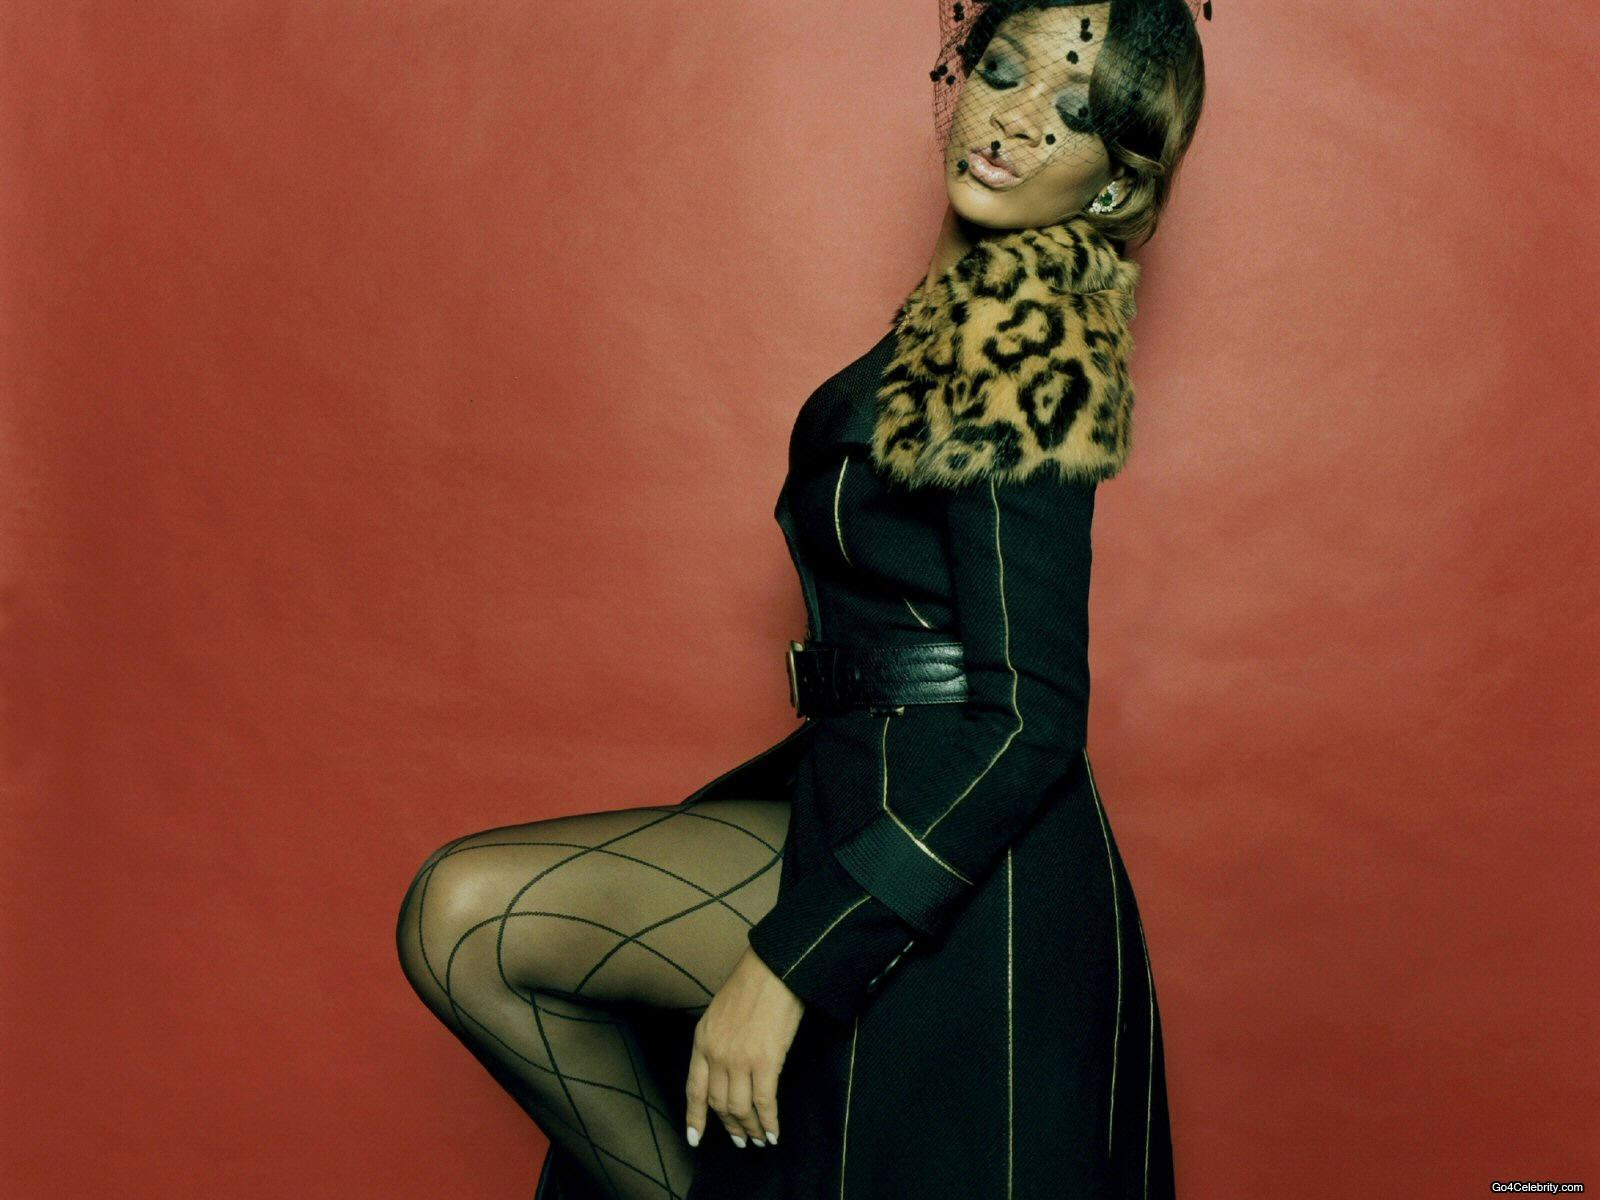 http://images2.fanpop.com/images/photos/6800000/Rihanna-rihanna-6848376-1600-1200.jpg